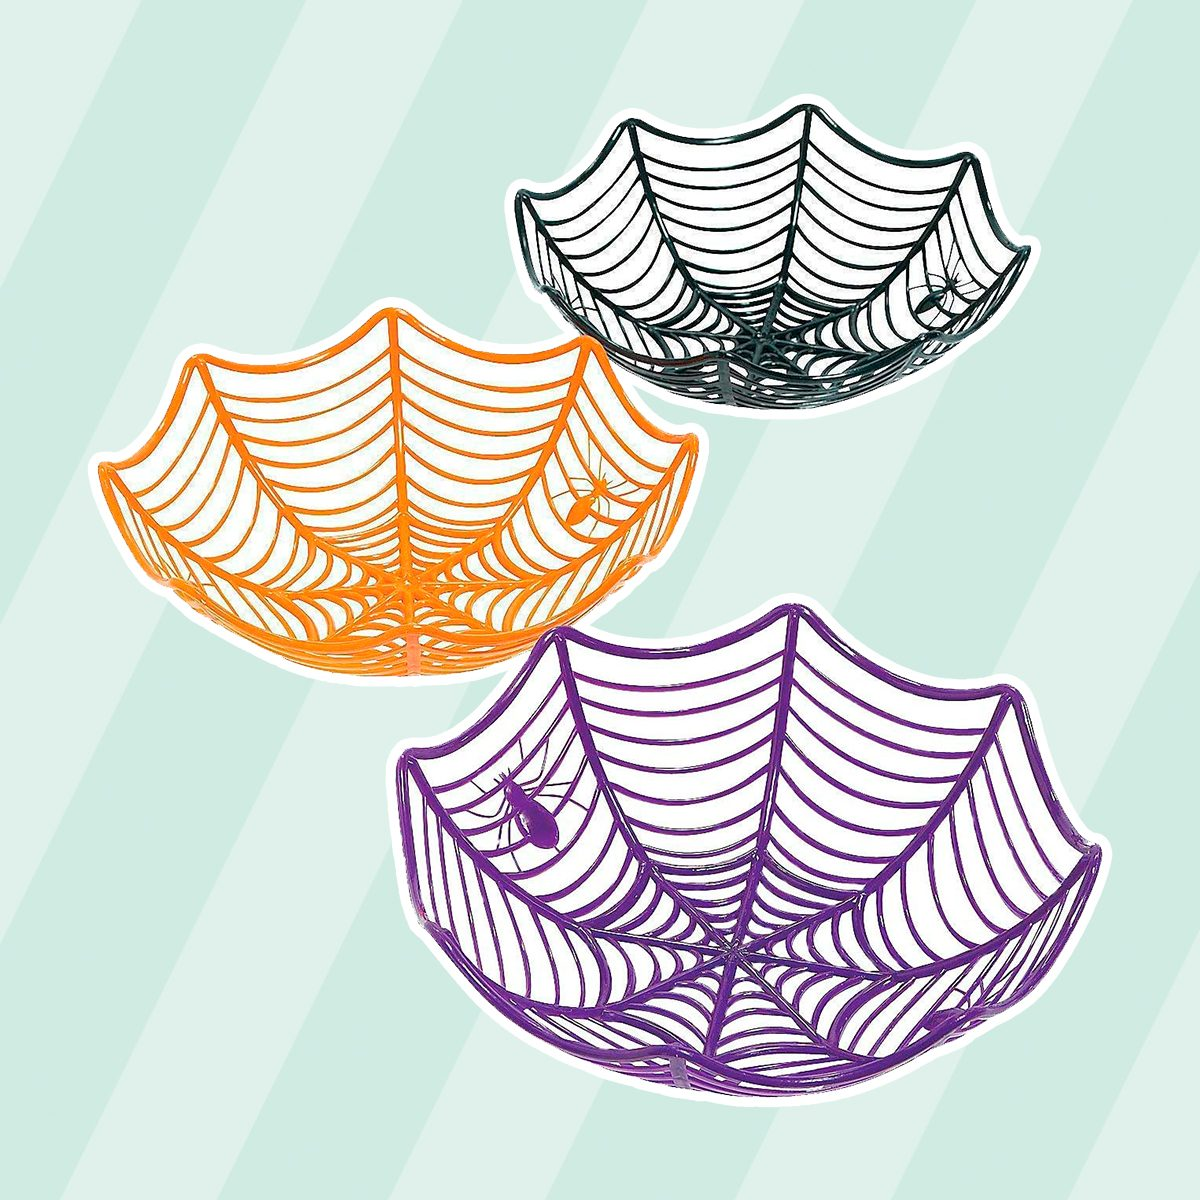 Fun Express Plastic Spider Web Multicolor Candy Bowls | 2-Pack (6 Count) | Great for Halloween-Themed Parties | Children Age 3+